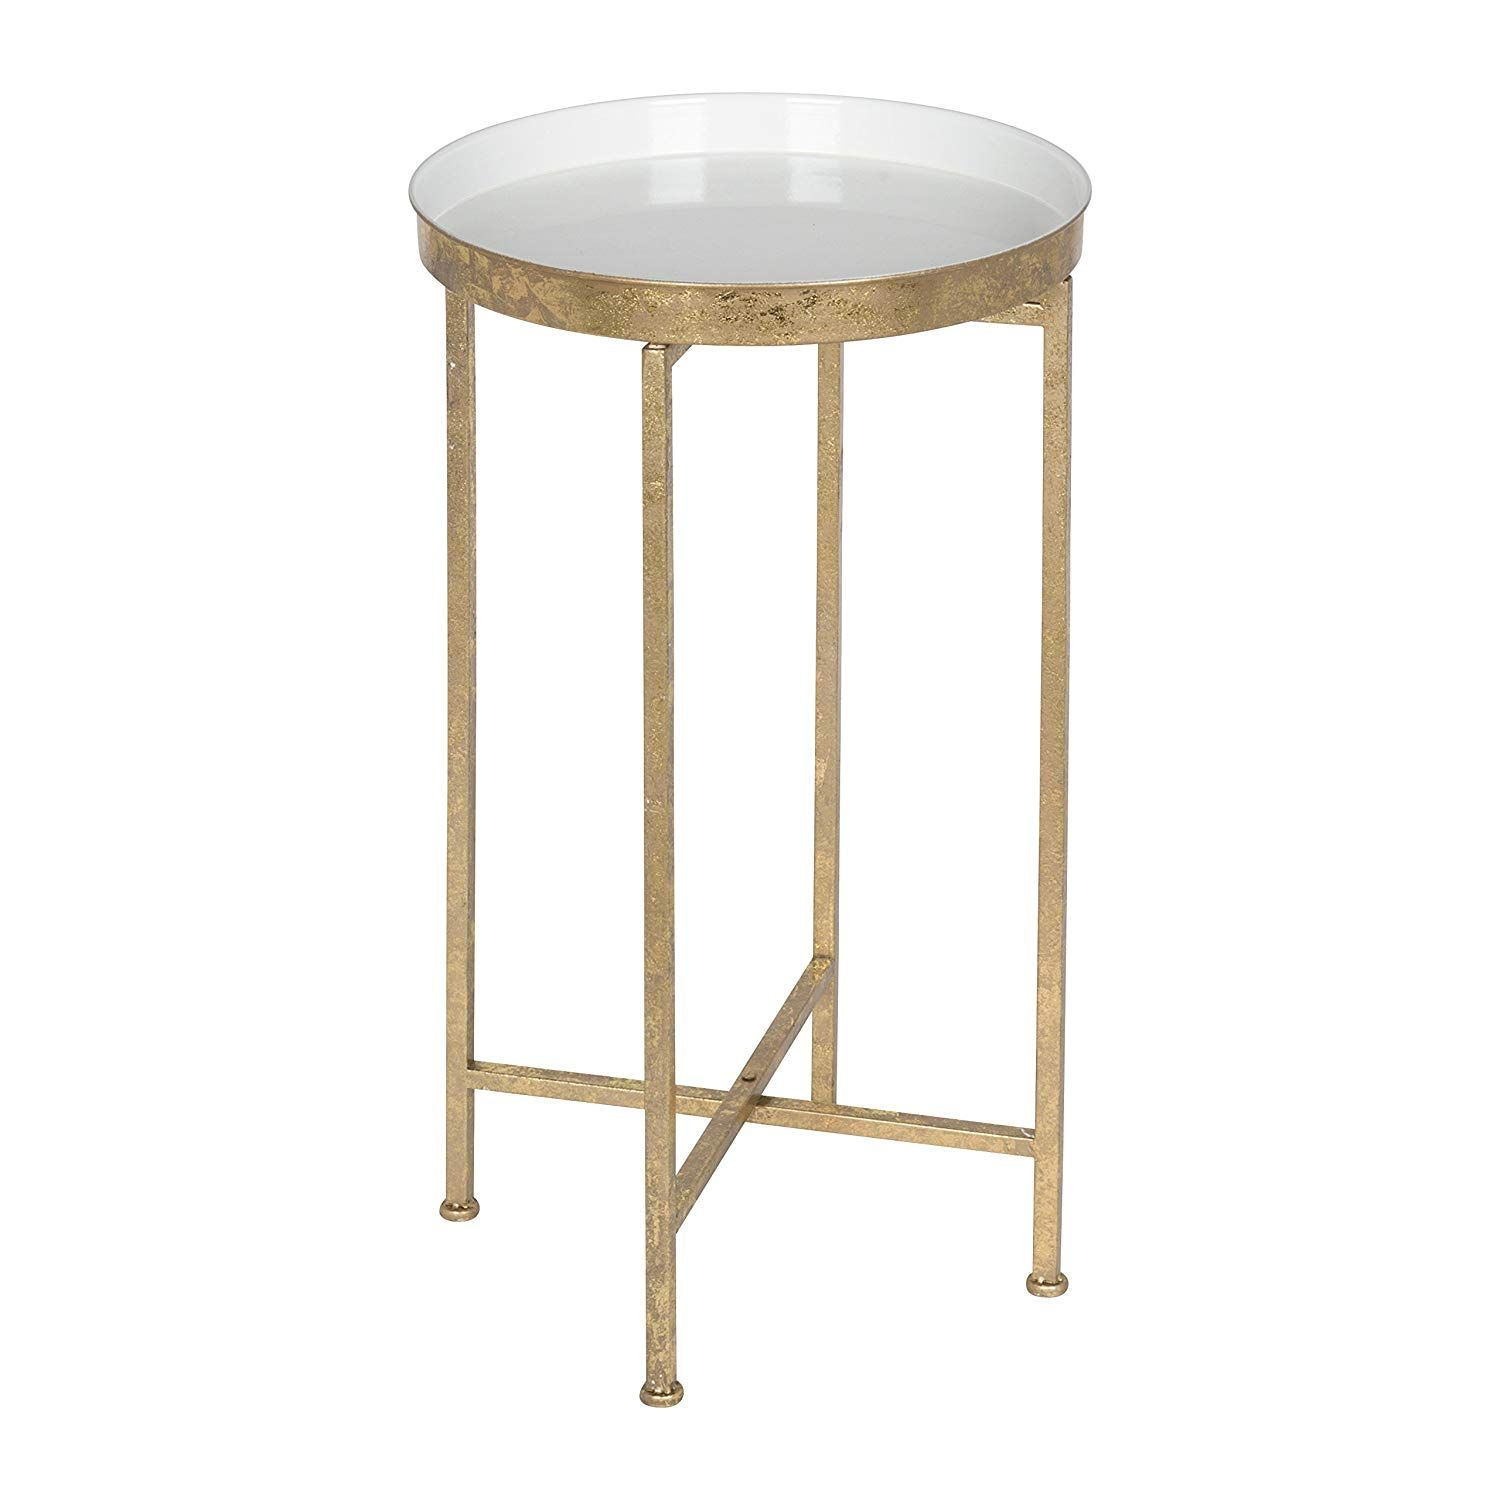 Amazon Com Kate And Laurel 212374 Celia Round Metal Foldable Tray Accent Table Pink And Gold Home Kitchen 60 Va Metal End Tables End Tables Accent Table